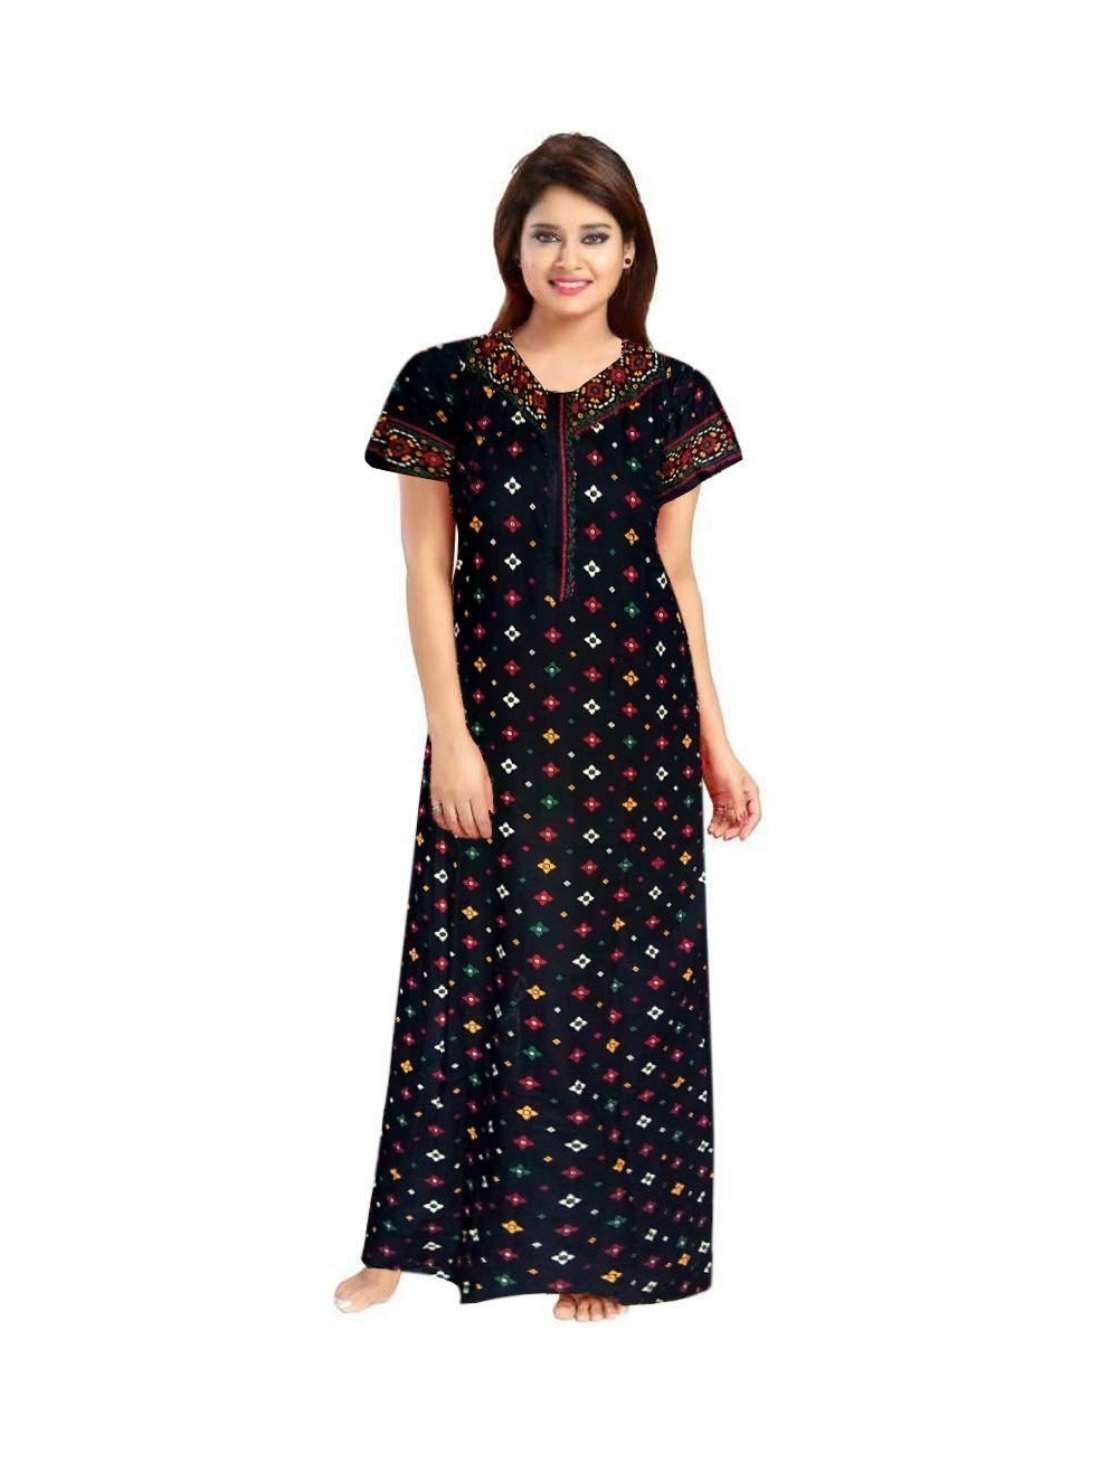 Women's Cotton Printed Night Gown